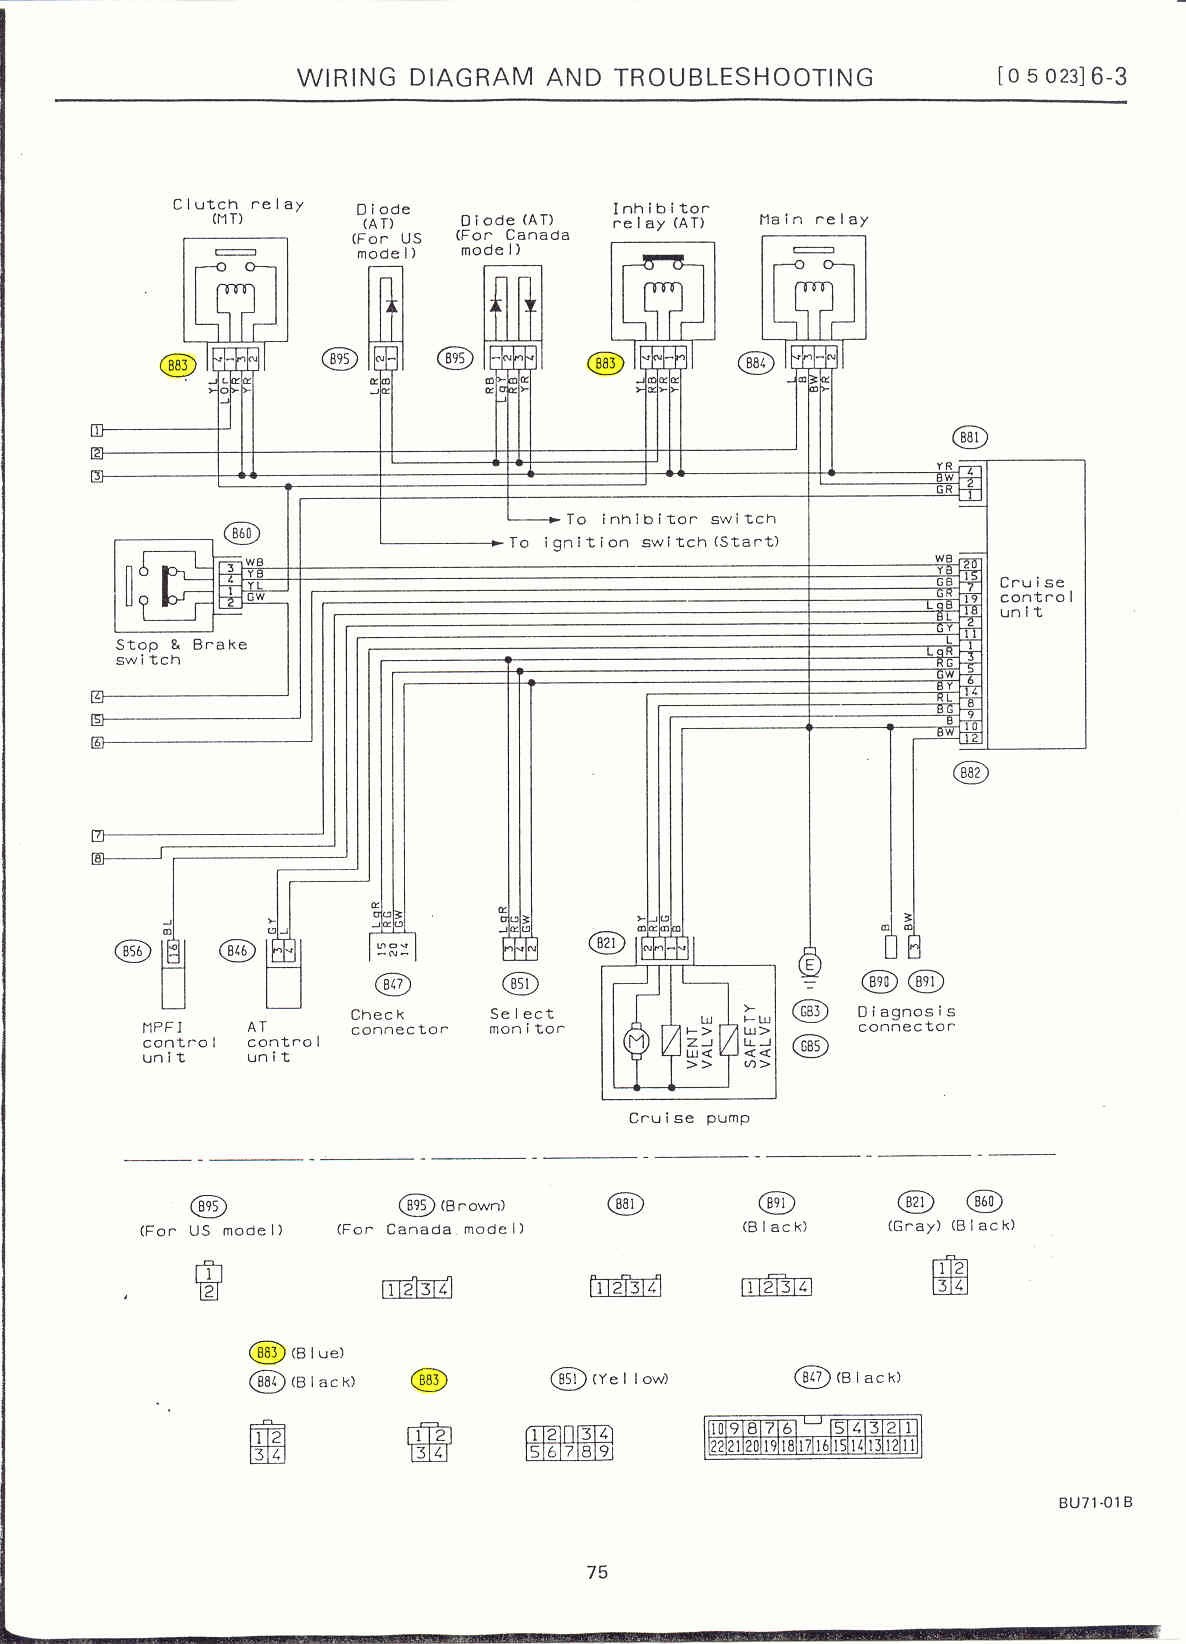 1992 Subaru Legacy Wiring Diagram - Wiring Diagram Data on 1995 subaru starter wiring diagram, 2010 subaru legacy headlight diagram, 1998 subaru outback fuse box diagram, 2001 subaru outback wagon headlight diagram,